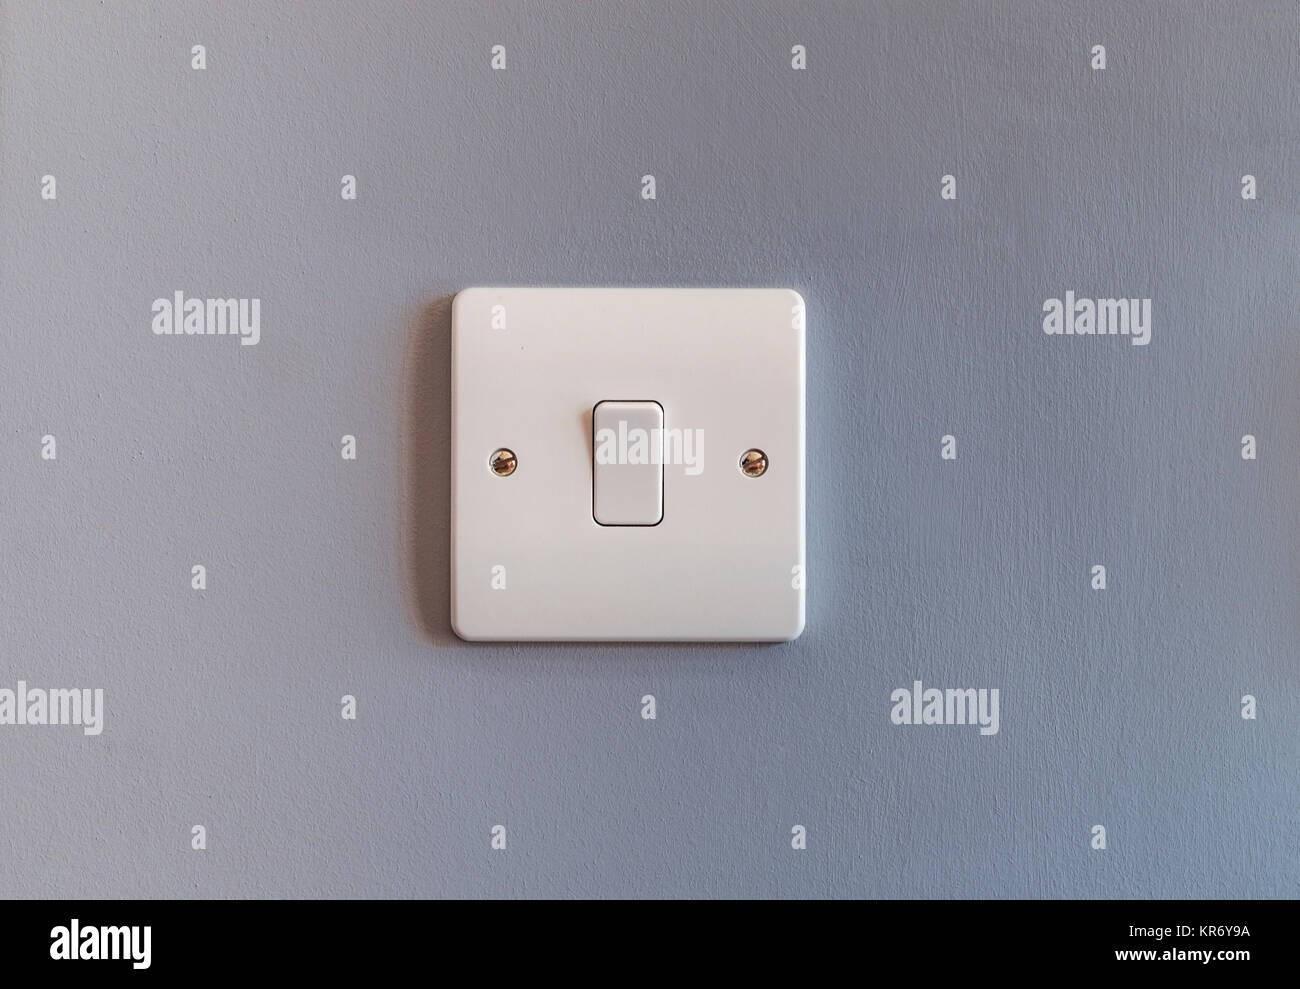 Lightswitch Stockfotos & Lightswitch Bilder - Alamy